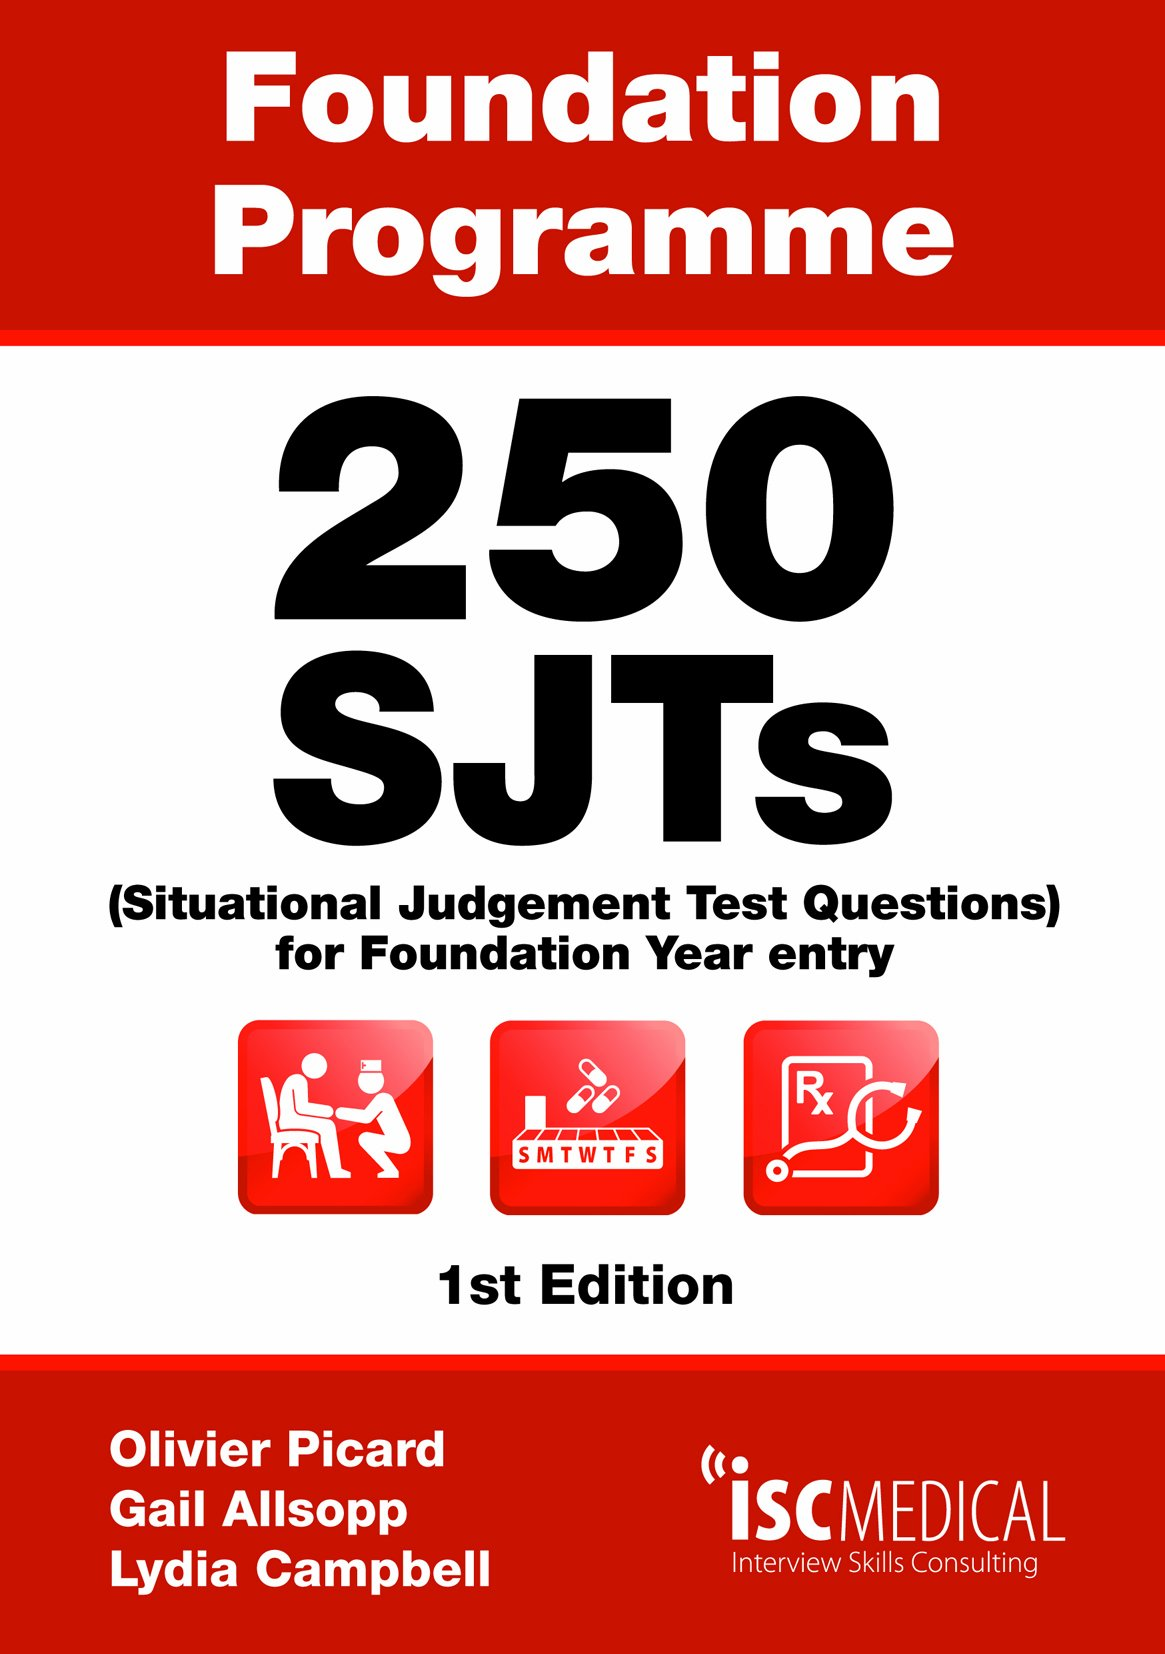 oxford assess and progress situational judgement test e amazon 250 sjts situational judgement test questions for foundation year entry foundation programme